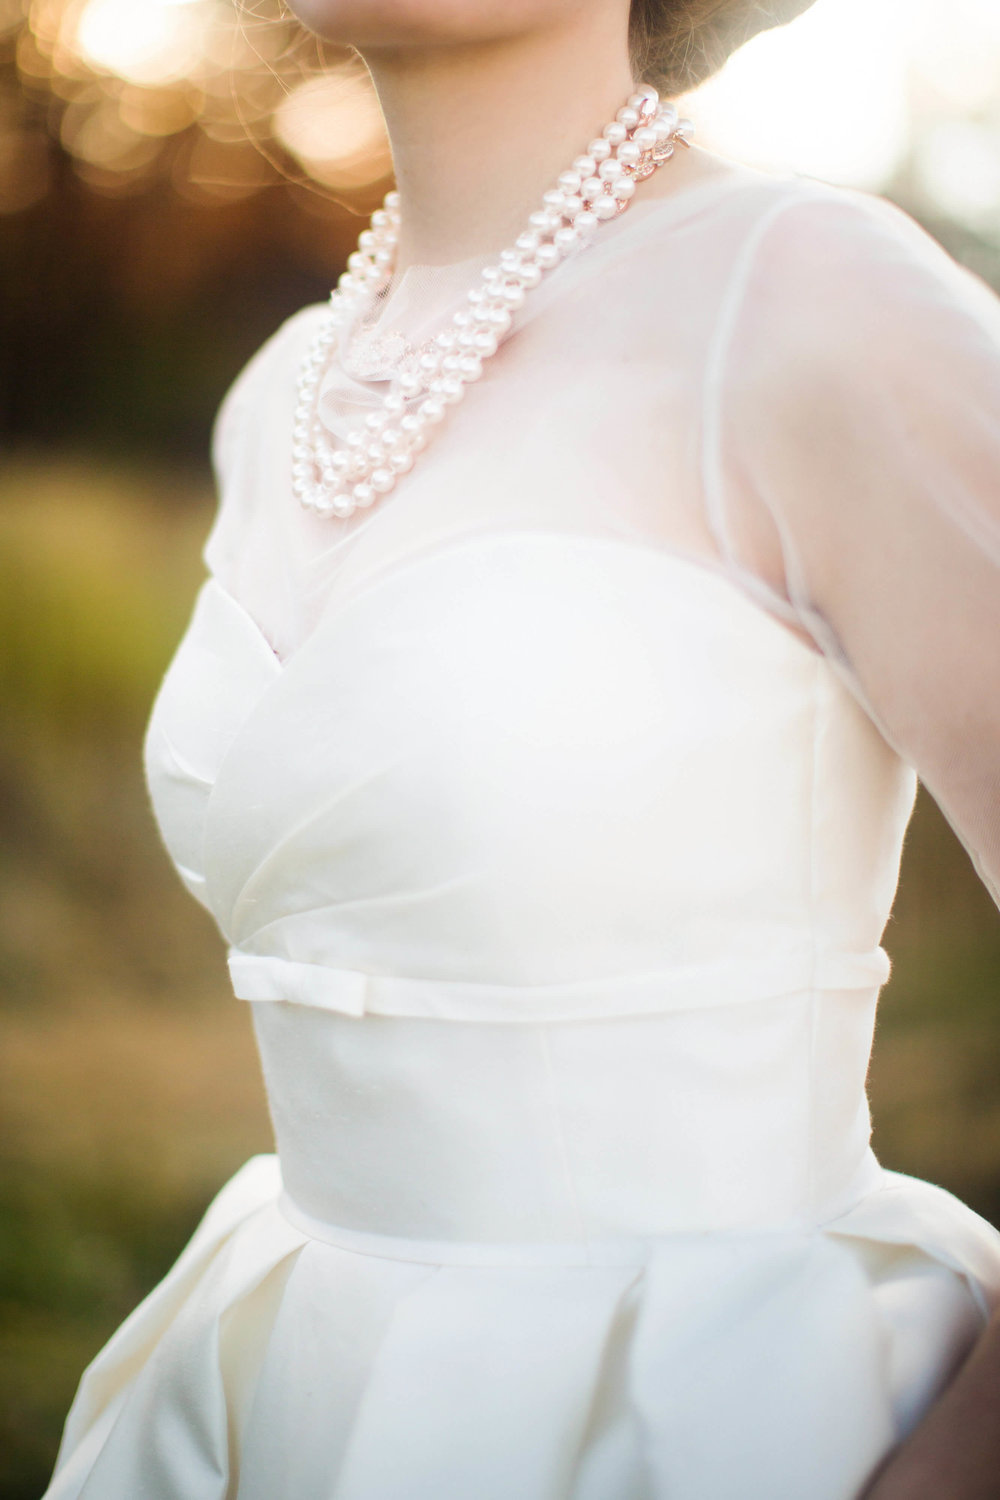 bride in pearls | Minnesota wedding photographer Studio KH wedding dress details | wedding blog | Sixpence Events 70 Ways to Photograph Your Wedding Dress.jpg